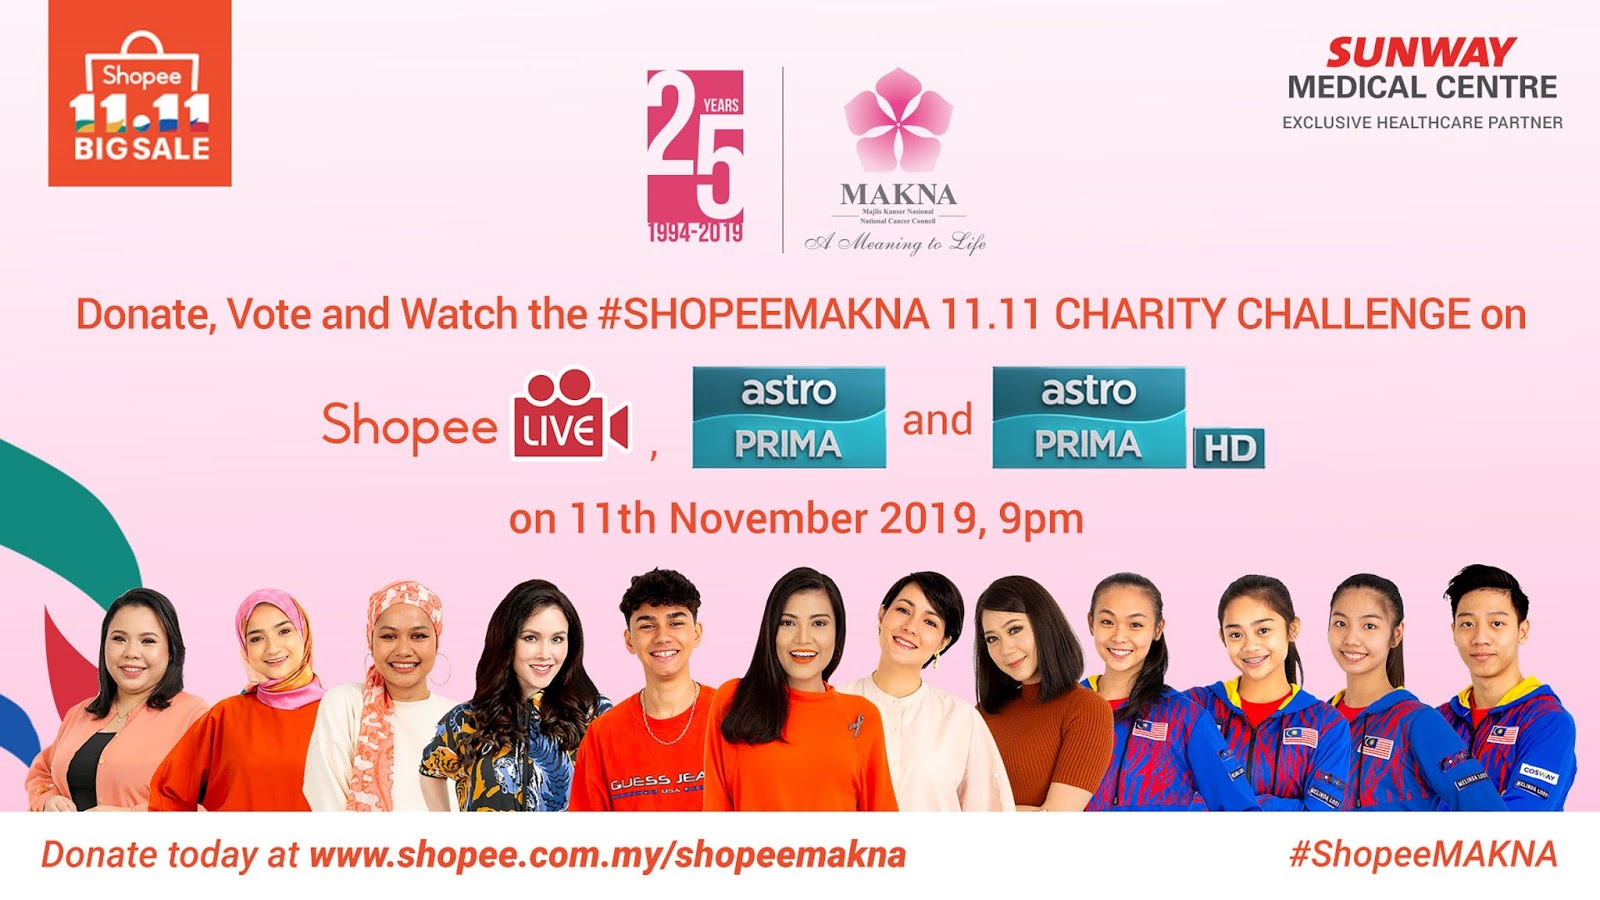 [Event] Shopee Malaysia: Watch 11 Celebrities Do the ShopeeMAKNA 11.11 Charity Challenge Live!